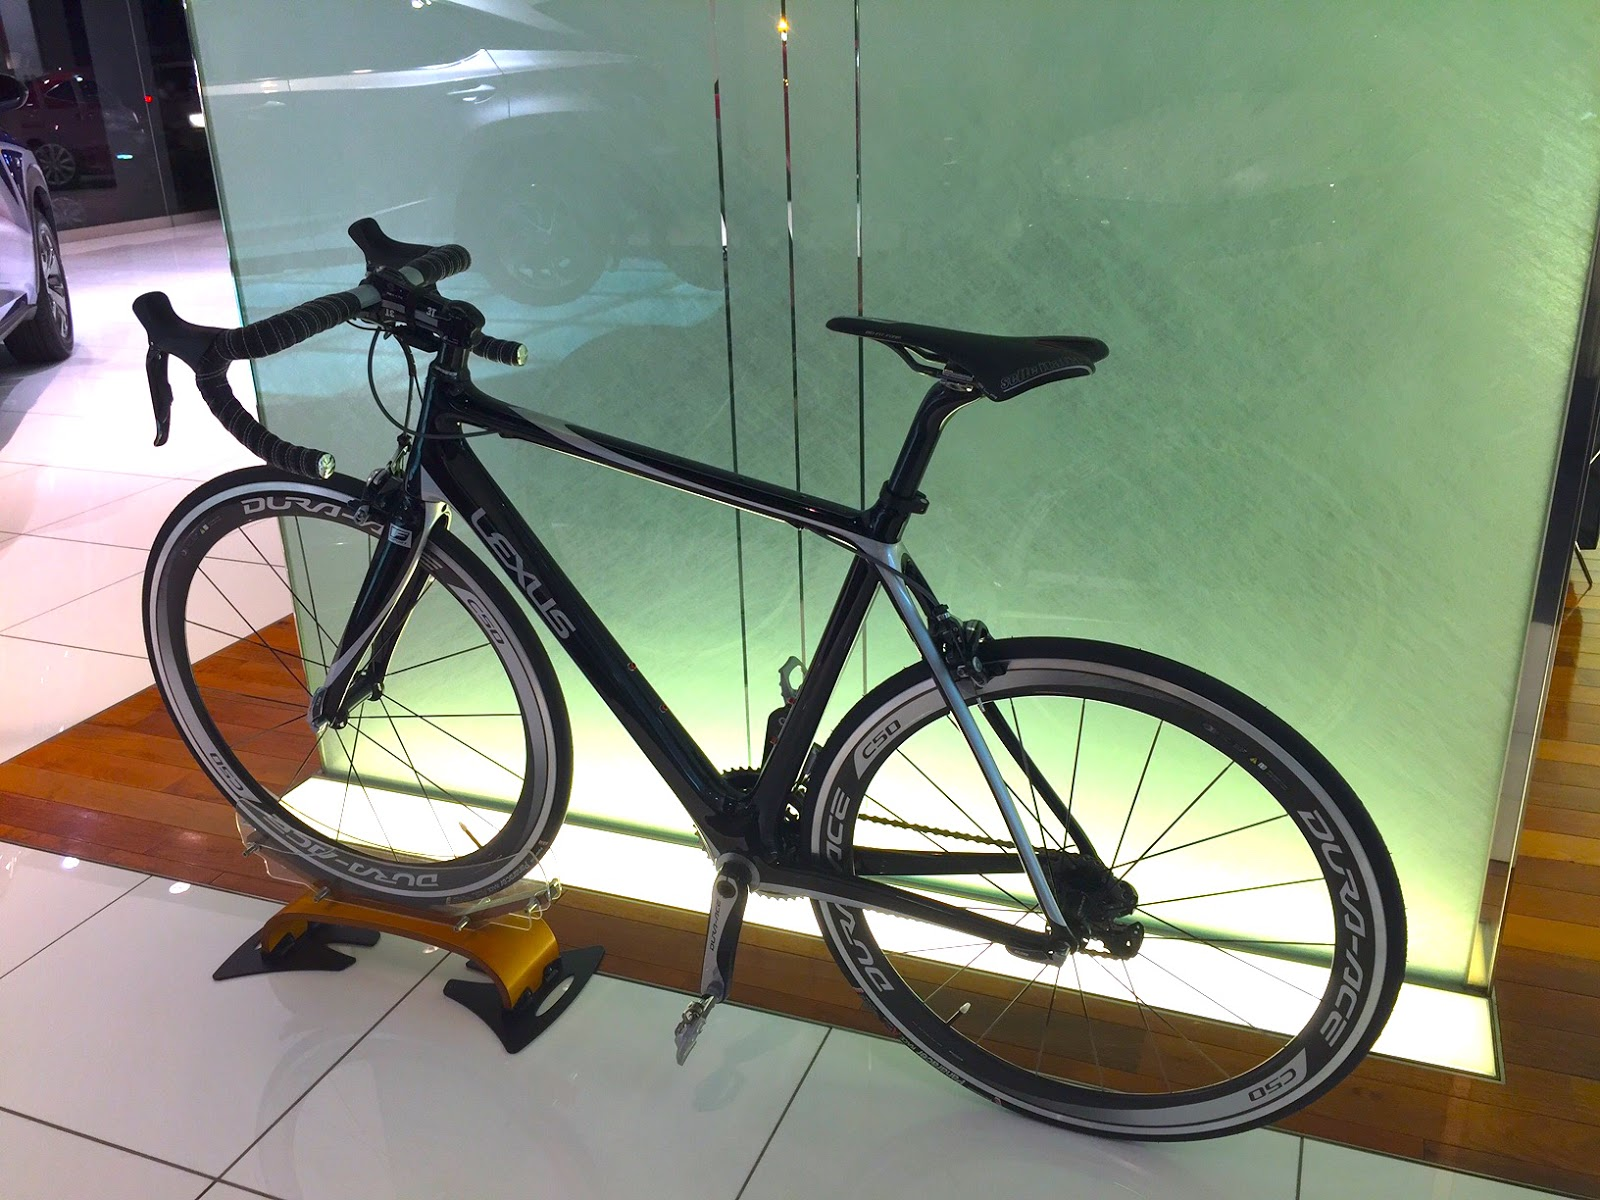 The Lexus F Sport Road Bike Uses A CFRP Main Frame Construction To Keep It  Unbelievably Light. Iu0027m Told By The Reader Who Sent Me These Stunning  Pictures, ...